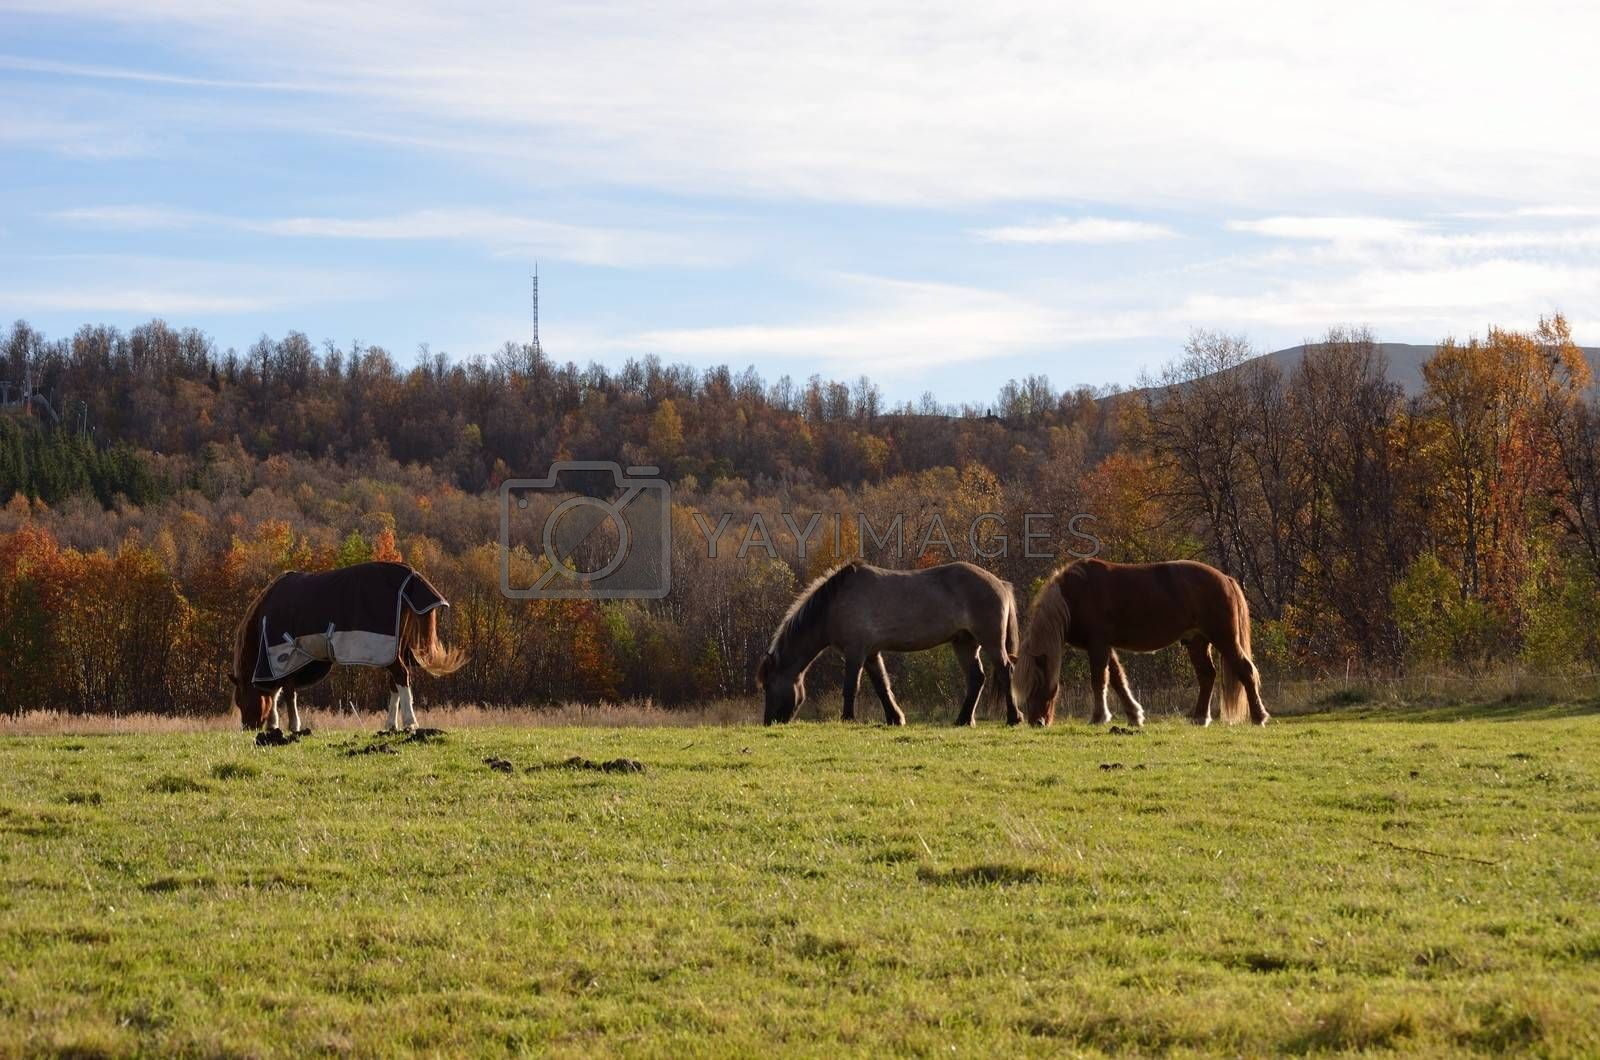 Beautiful horses on a field in Norway in the late autumn sun